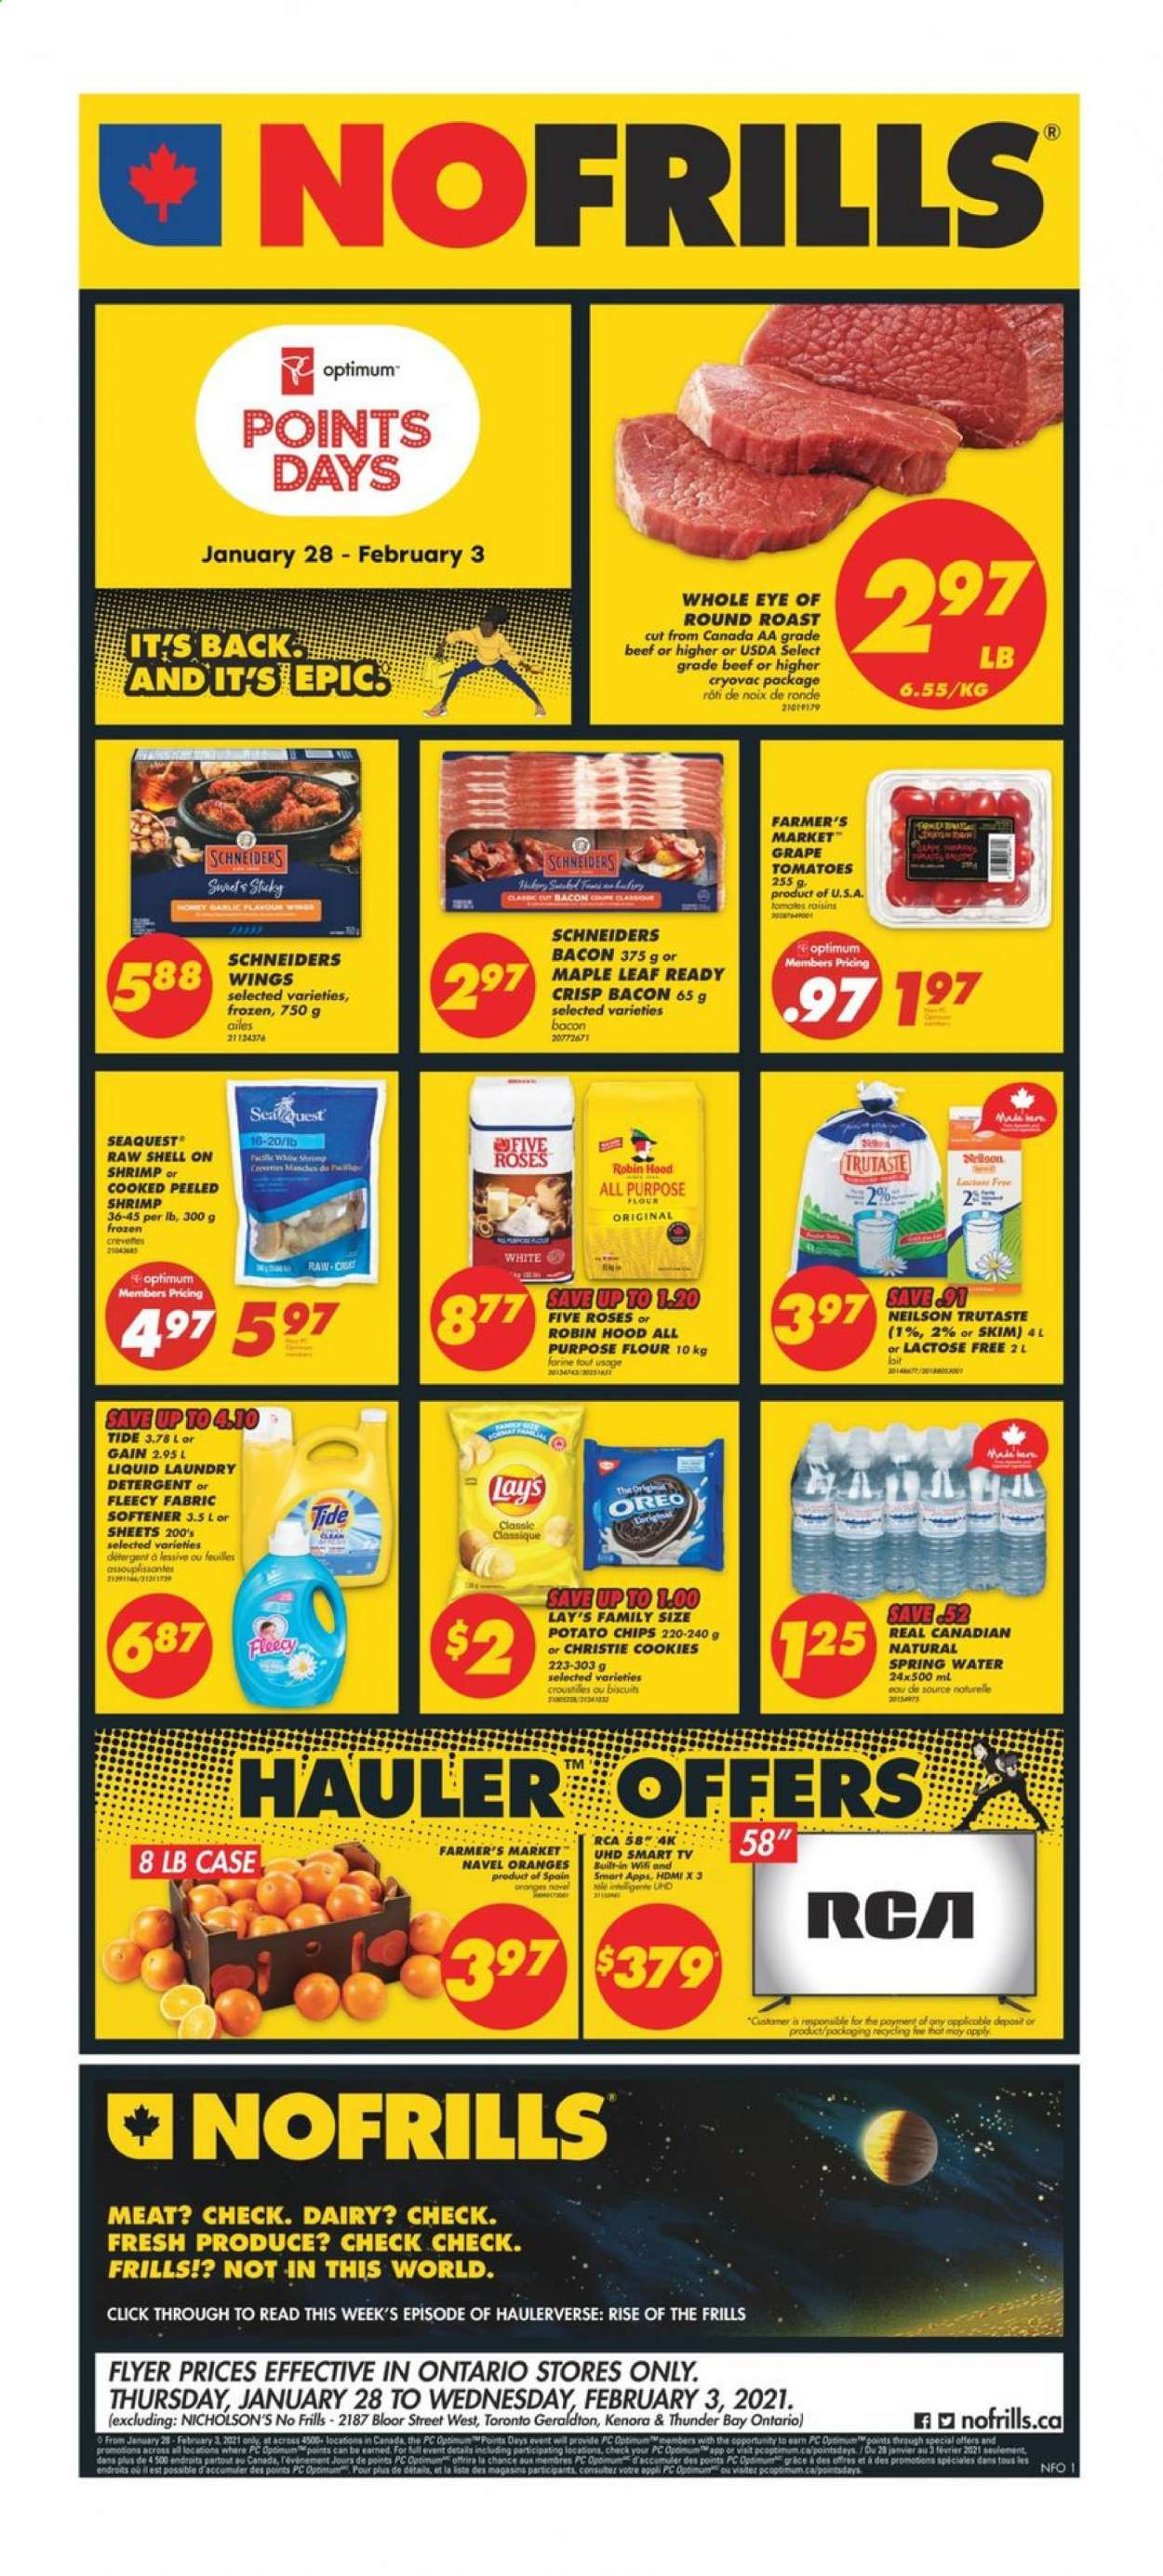 No Frills Flyer - January 28, 2021 - February 03, 2021 - Sales products - water. Page 1.